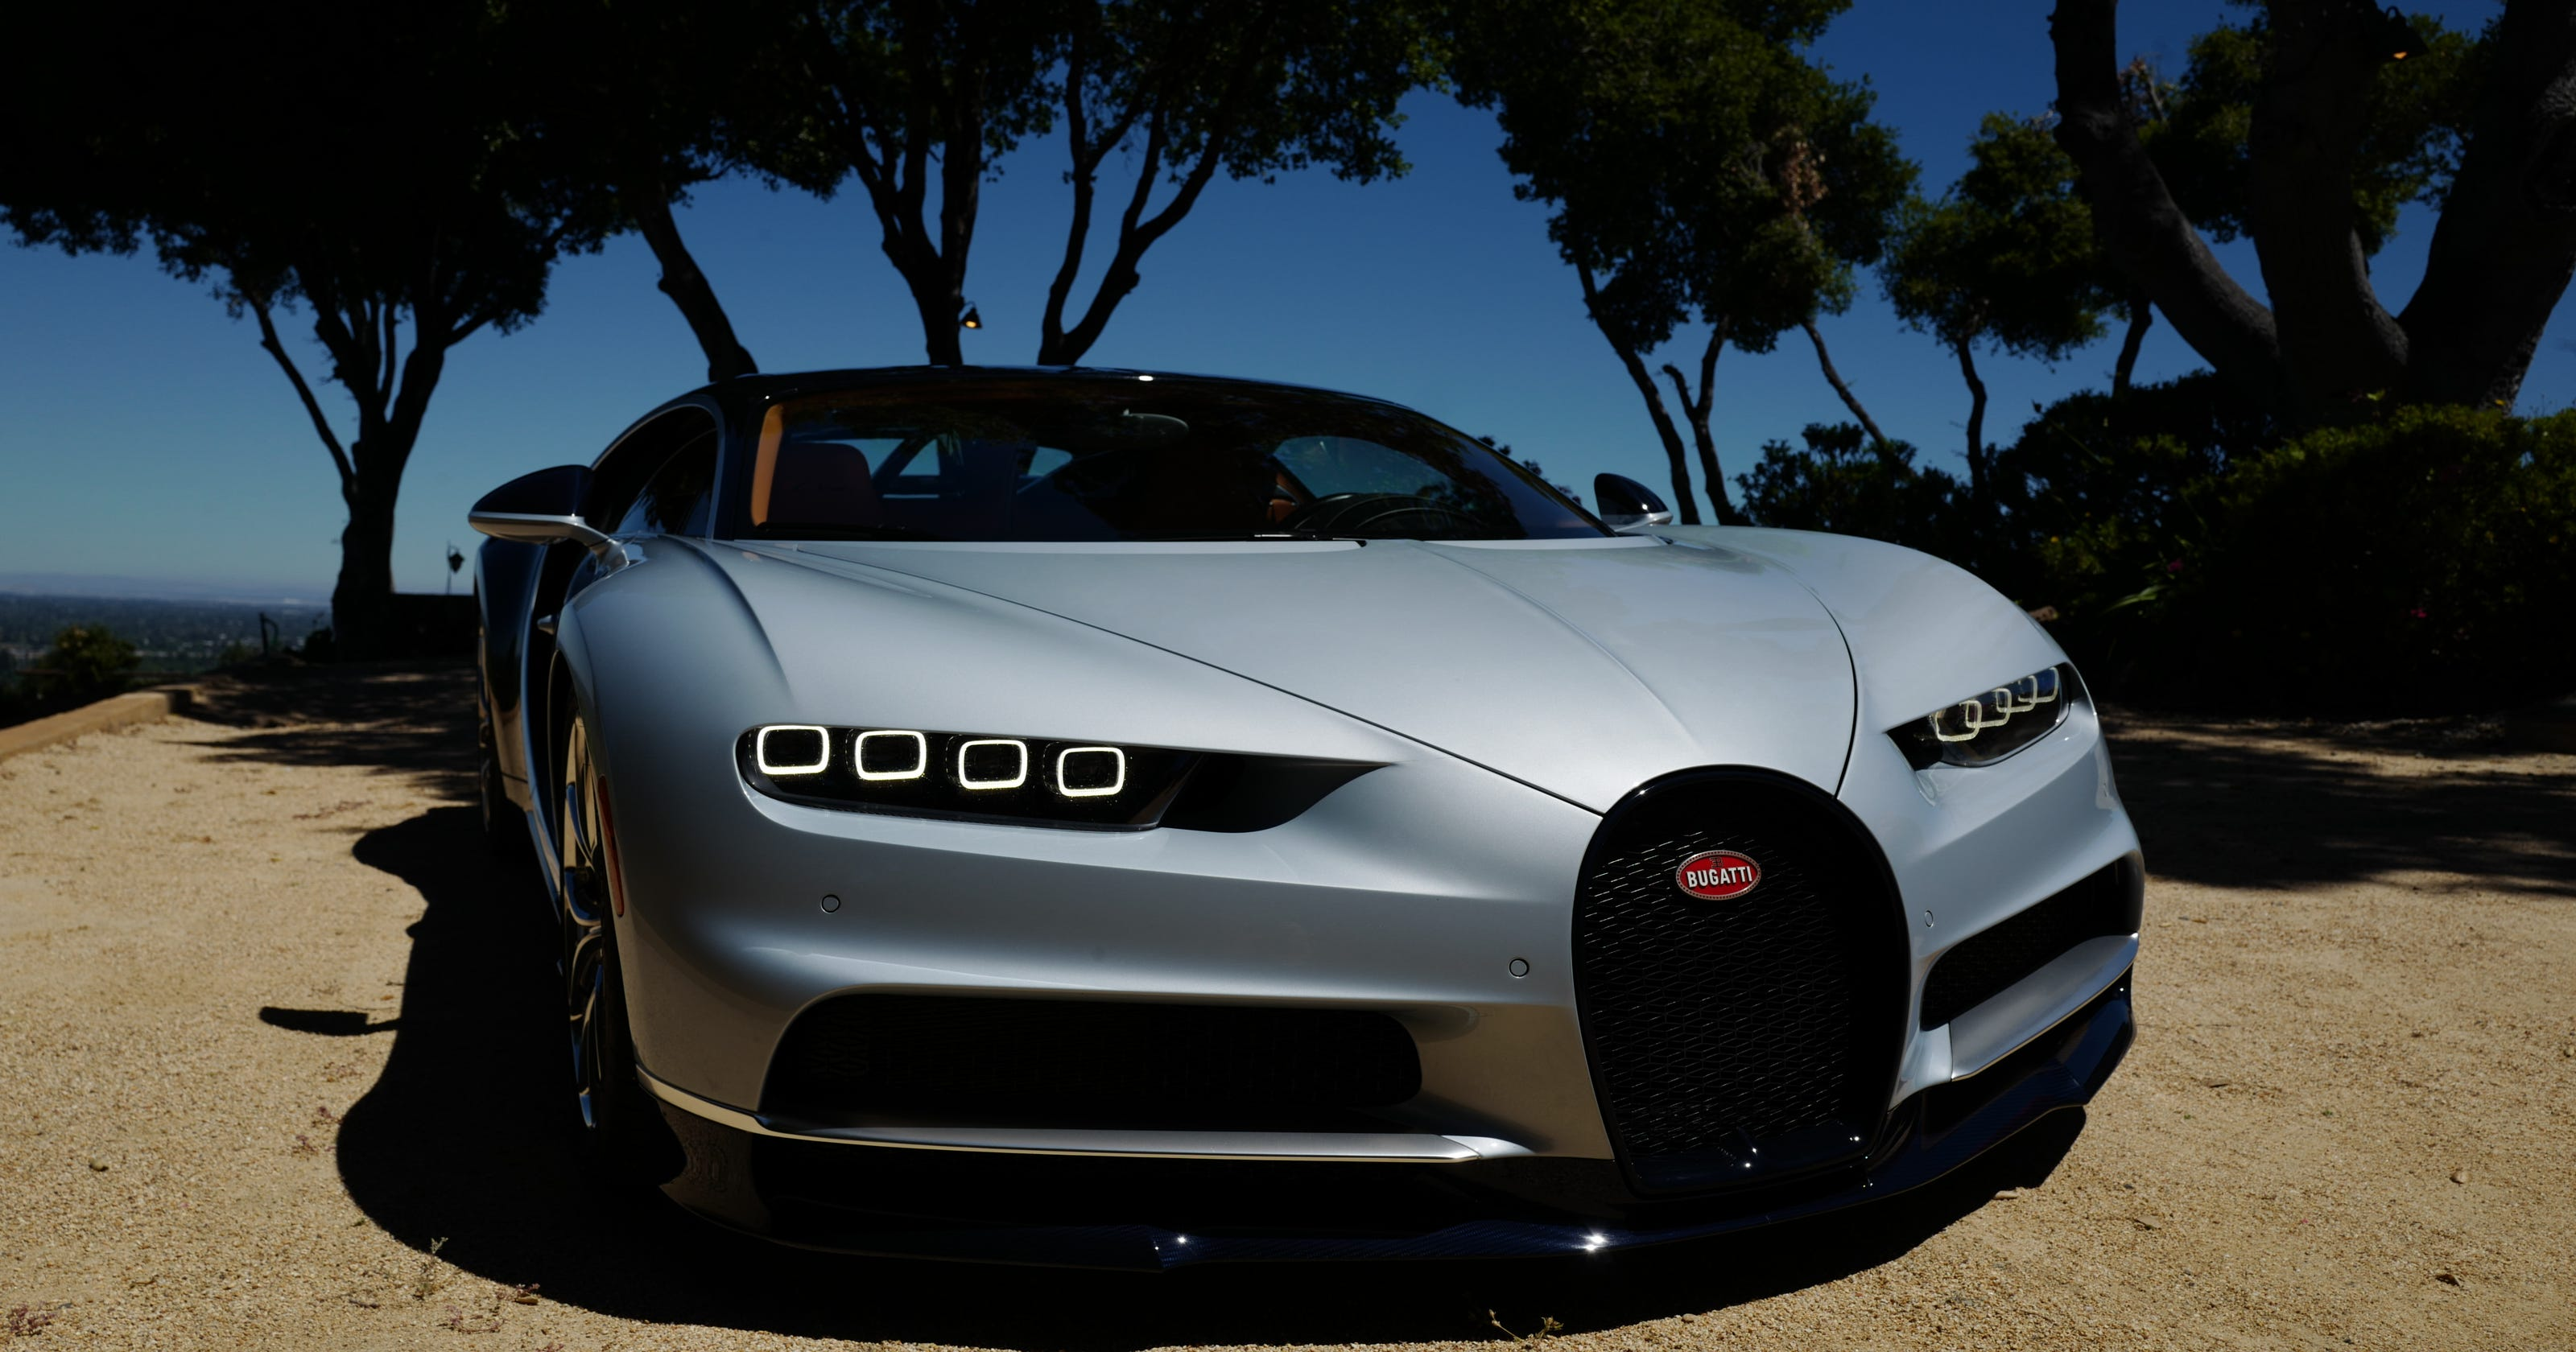 For An Elite Few Bugatti S 261 Mph Dream Car Beckons